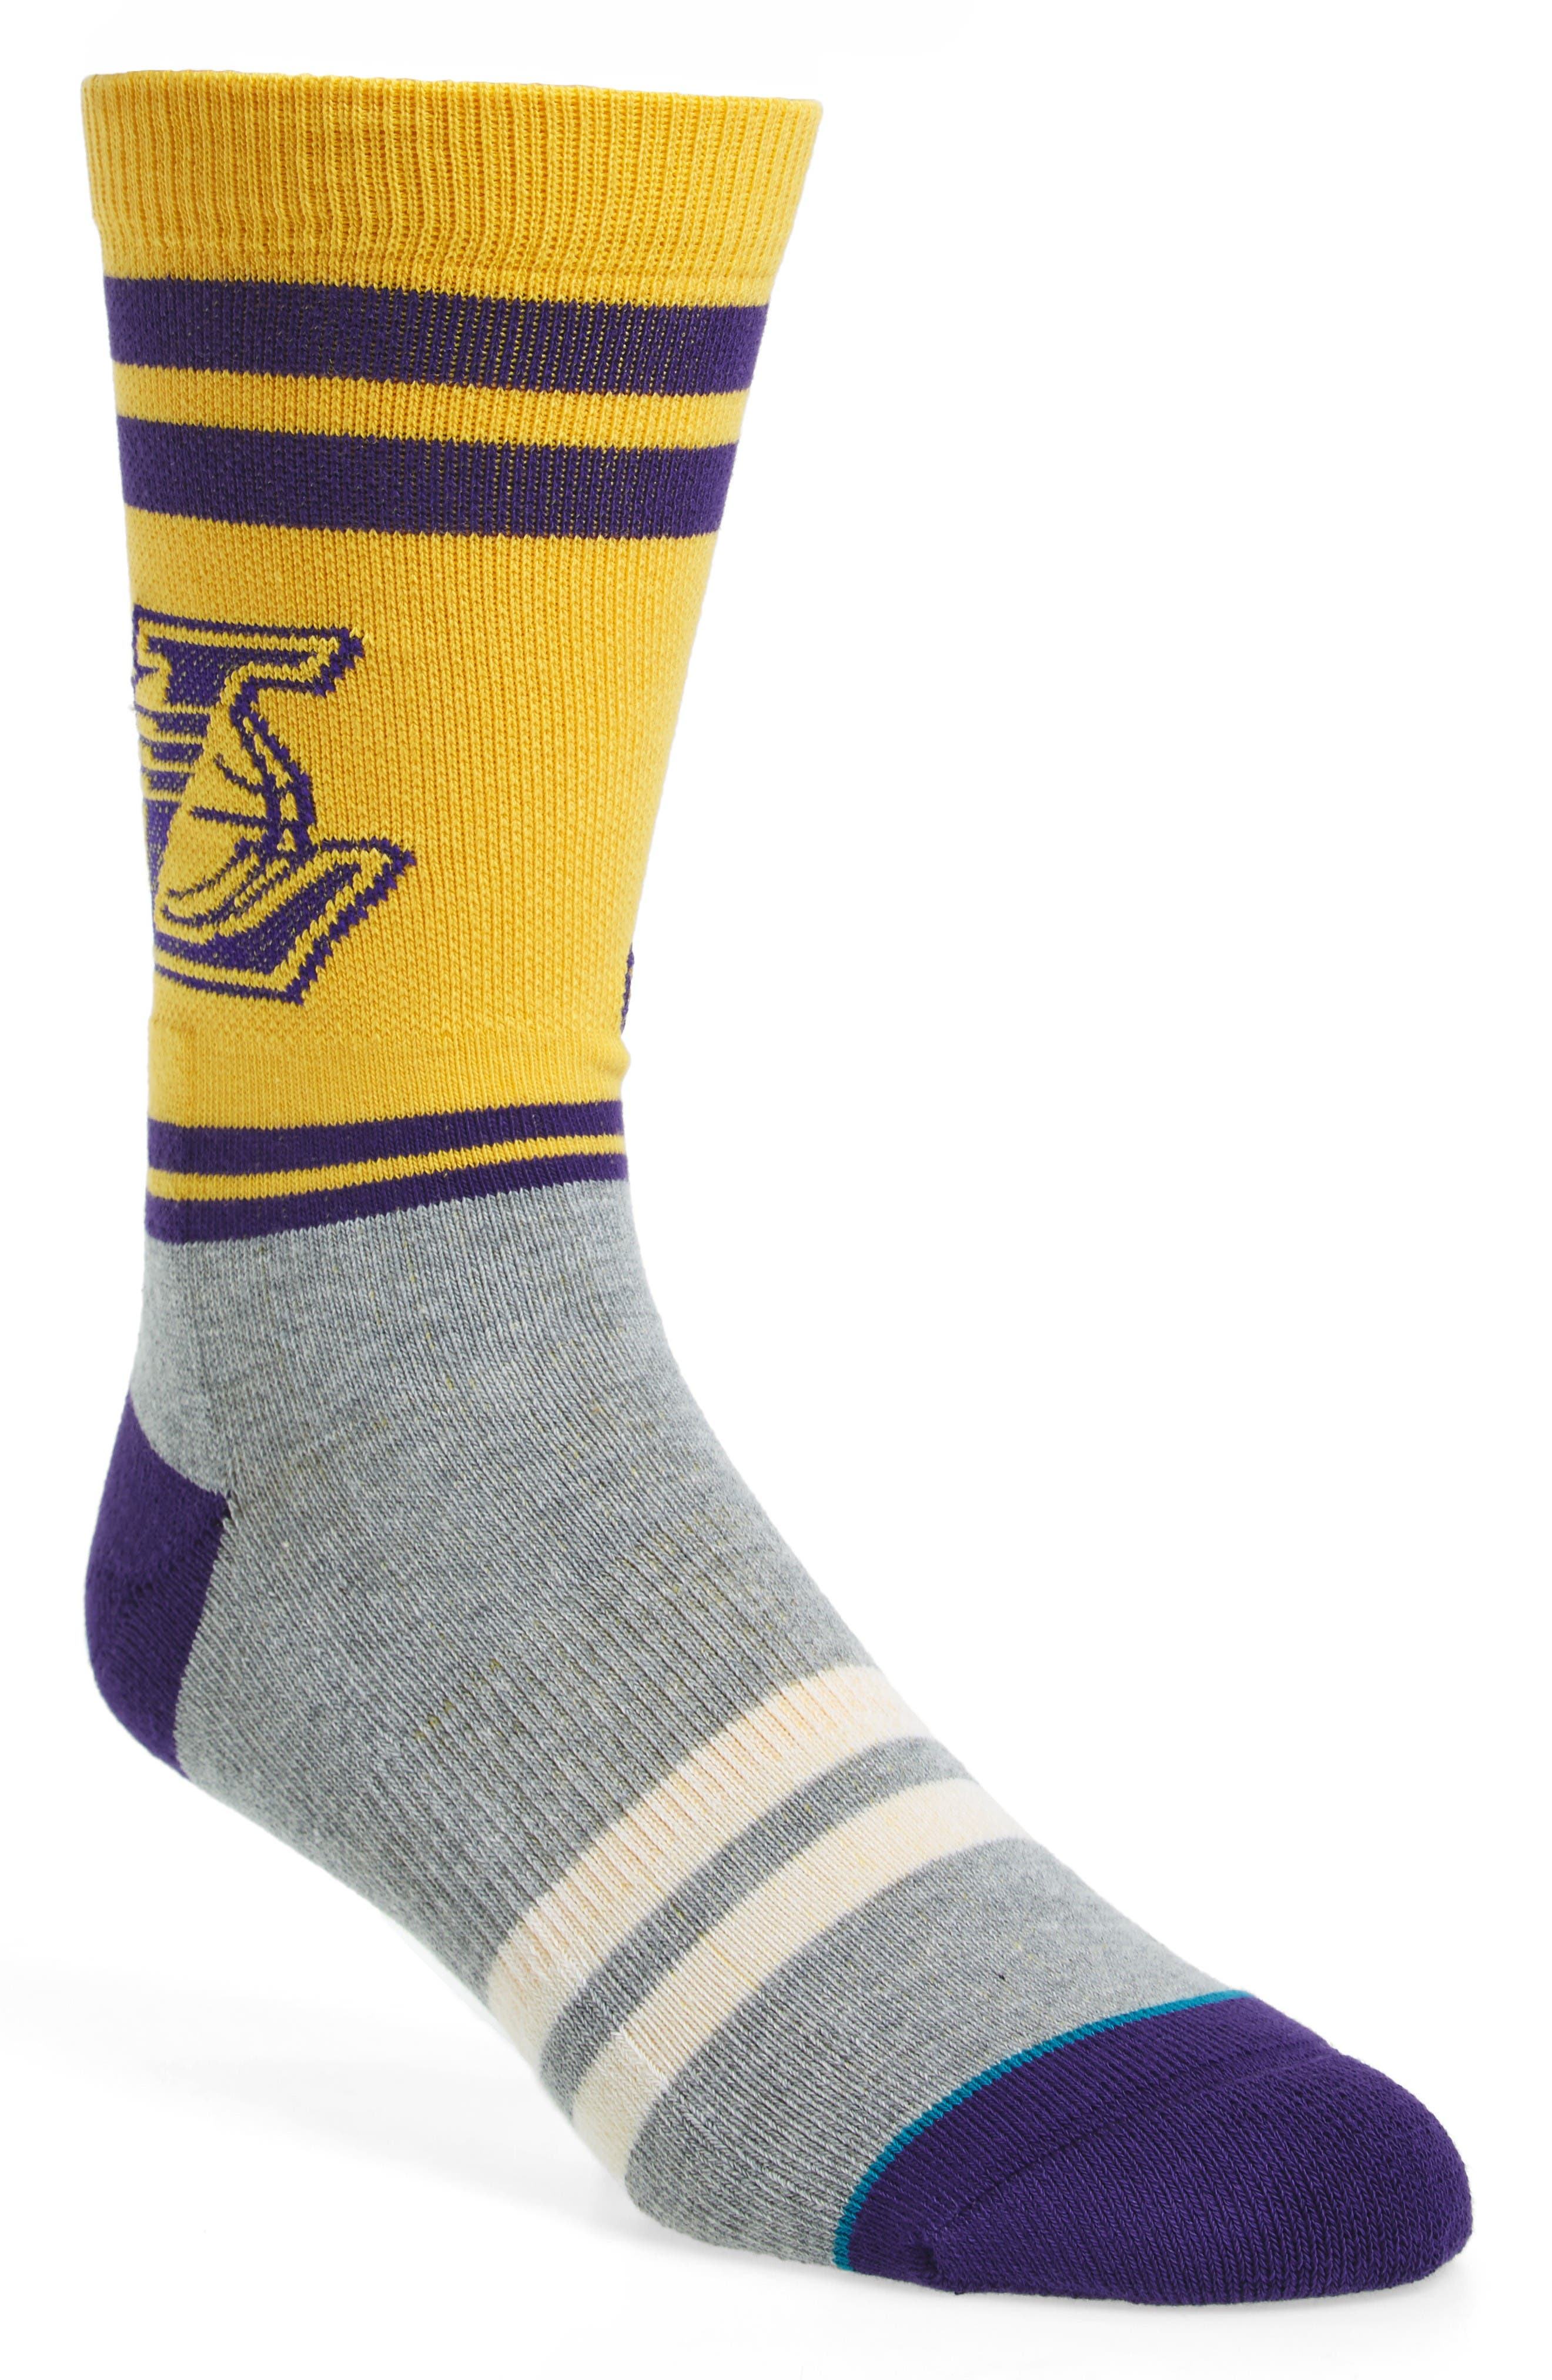 Main Image - Stance City Gym Los Angeles Lakers Socks